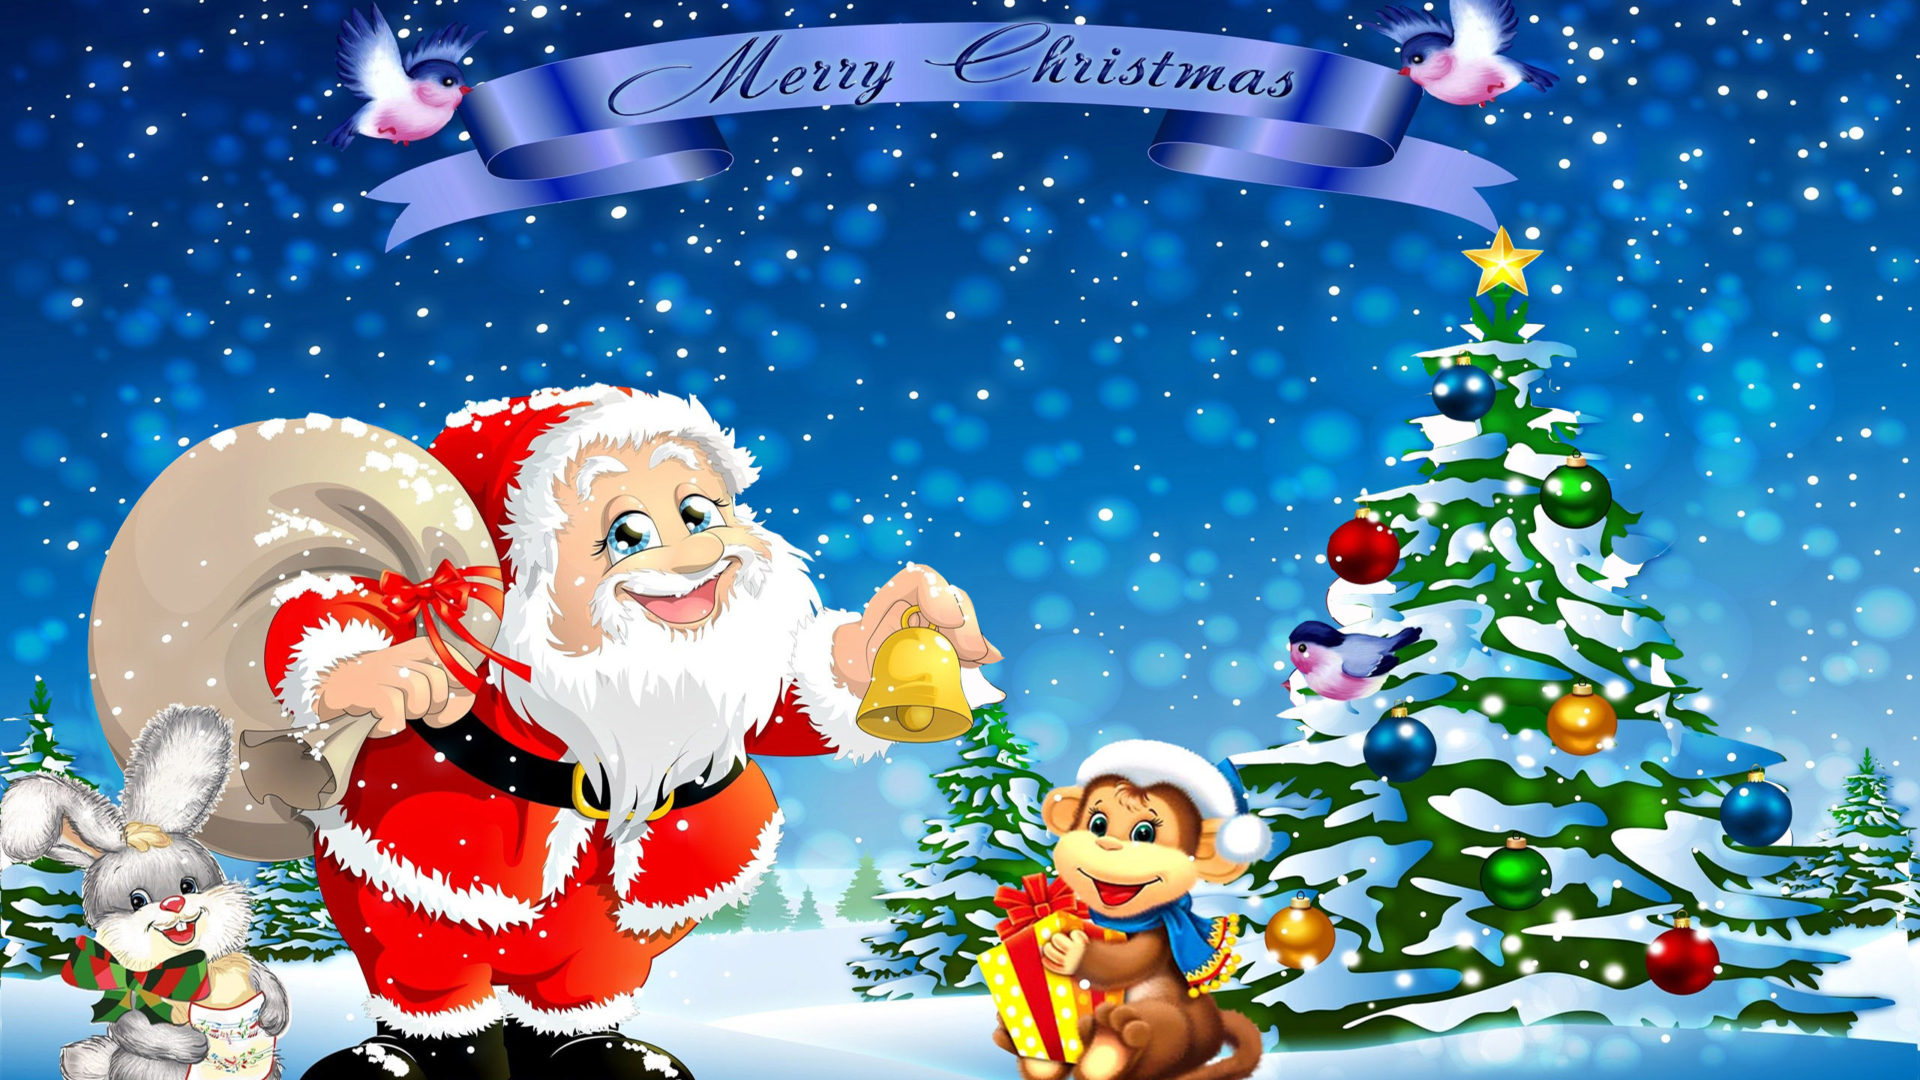 Cute Animals Playing Soccer Wallpaper Santa Claus Rabbit Monkey Christmas Tree Hd Wallpaper